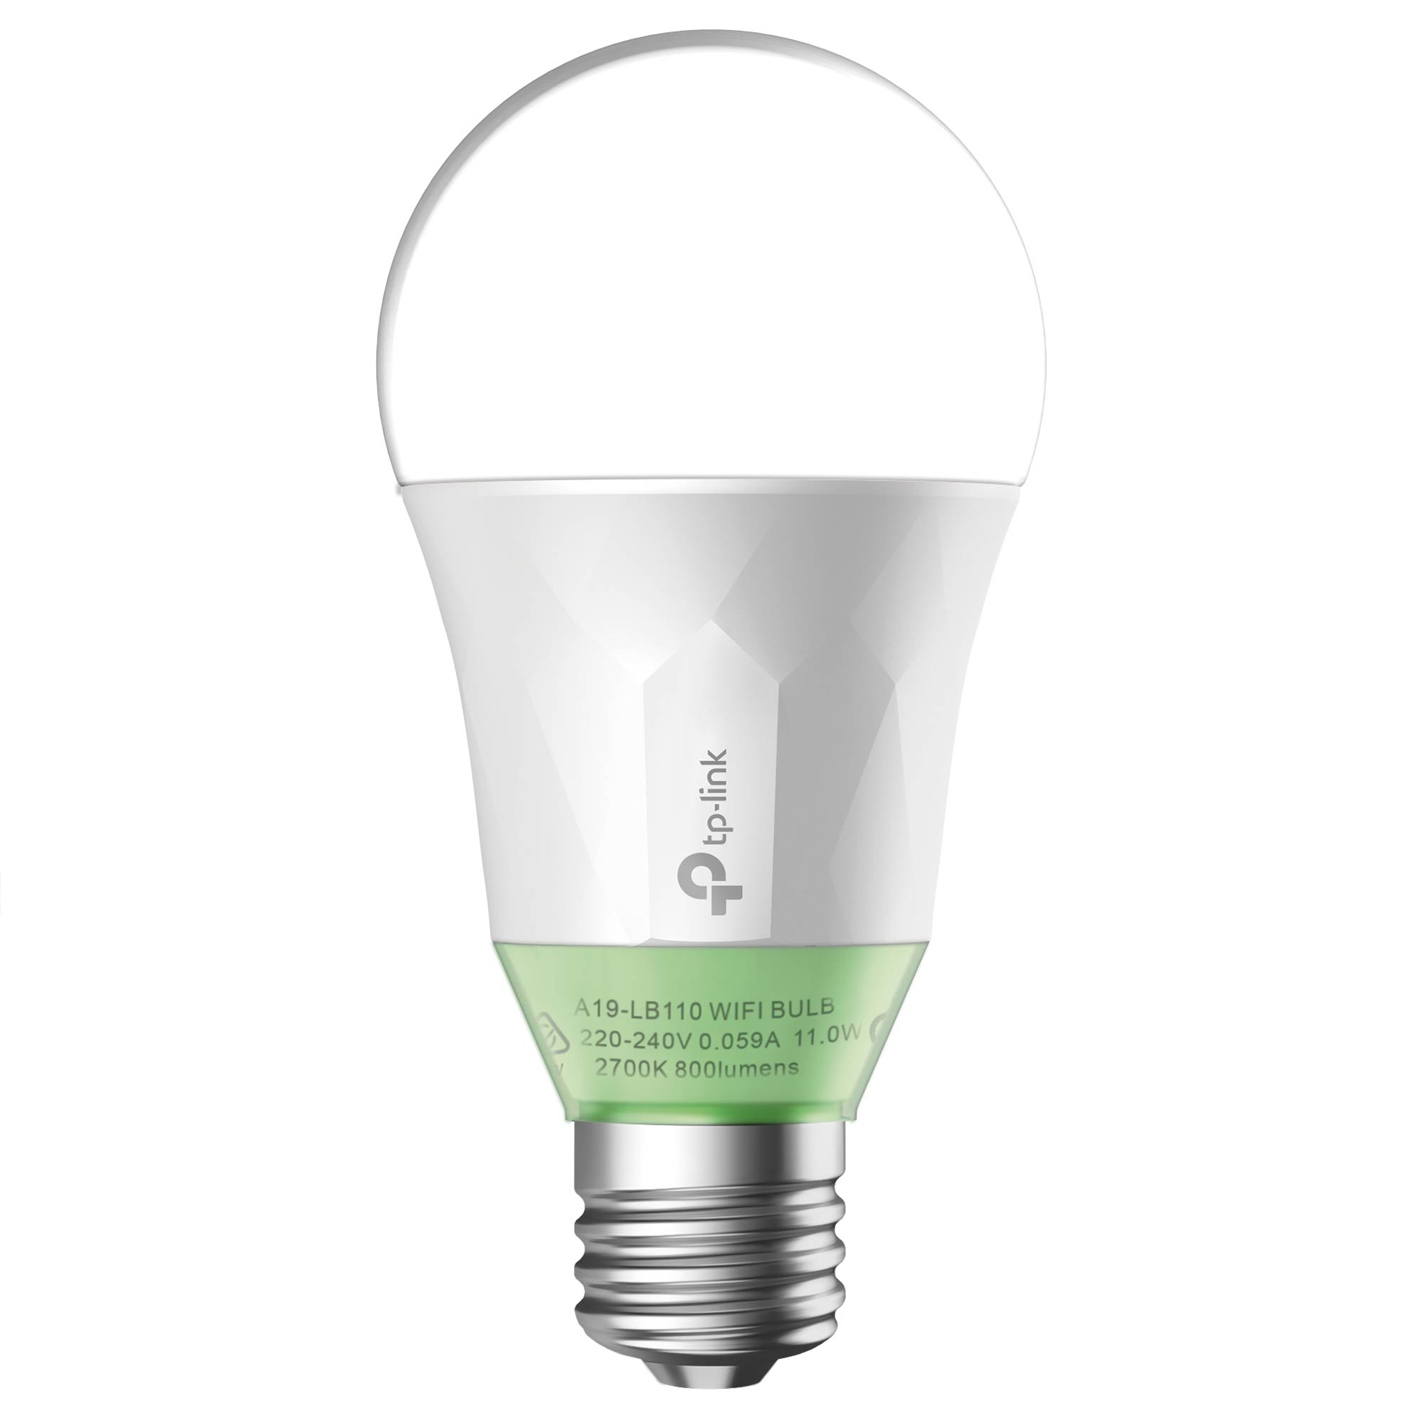 TP-LINK LB110 smart lighting Smart bulb White Wi-Fi